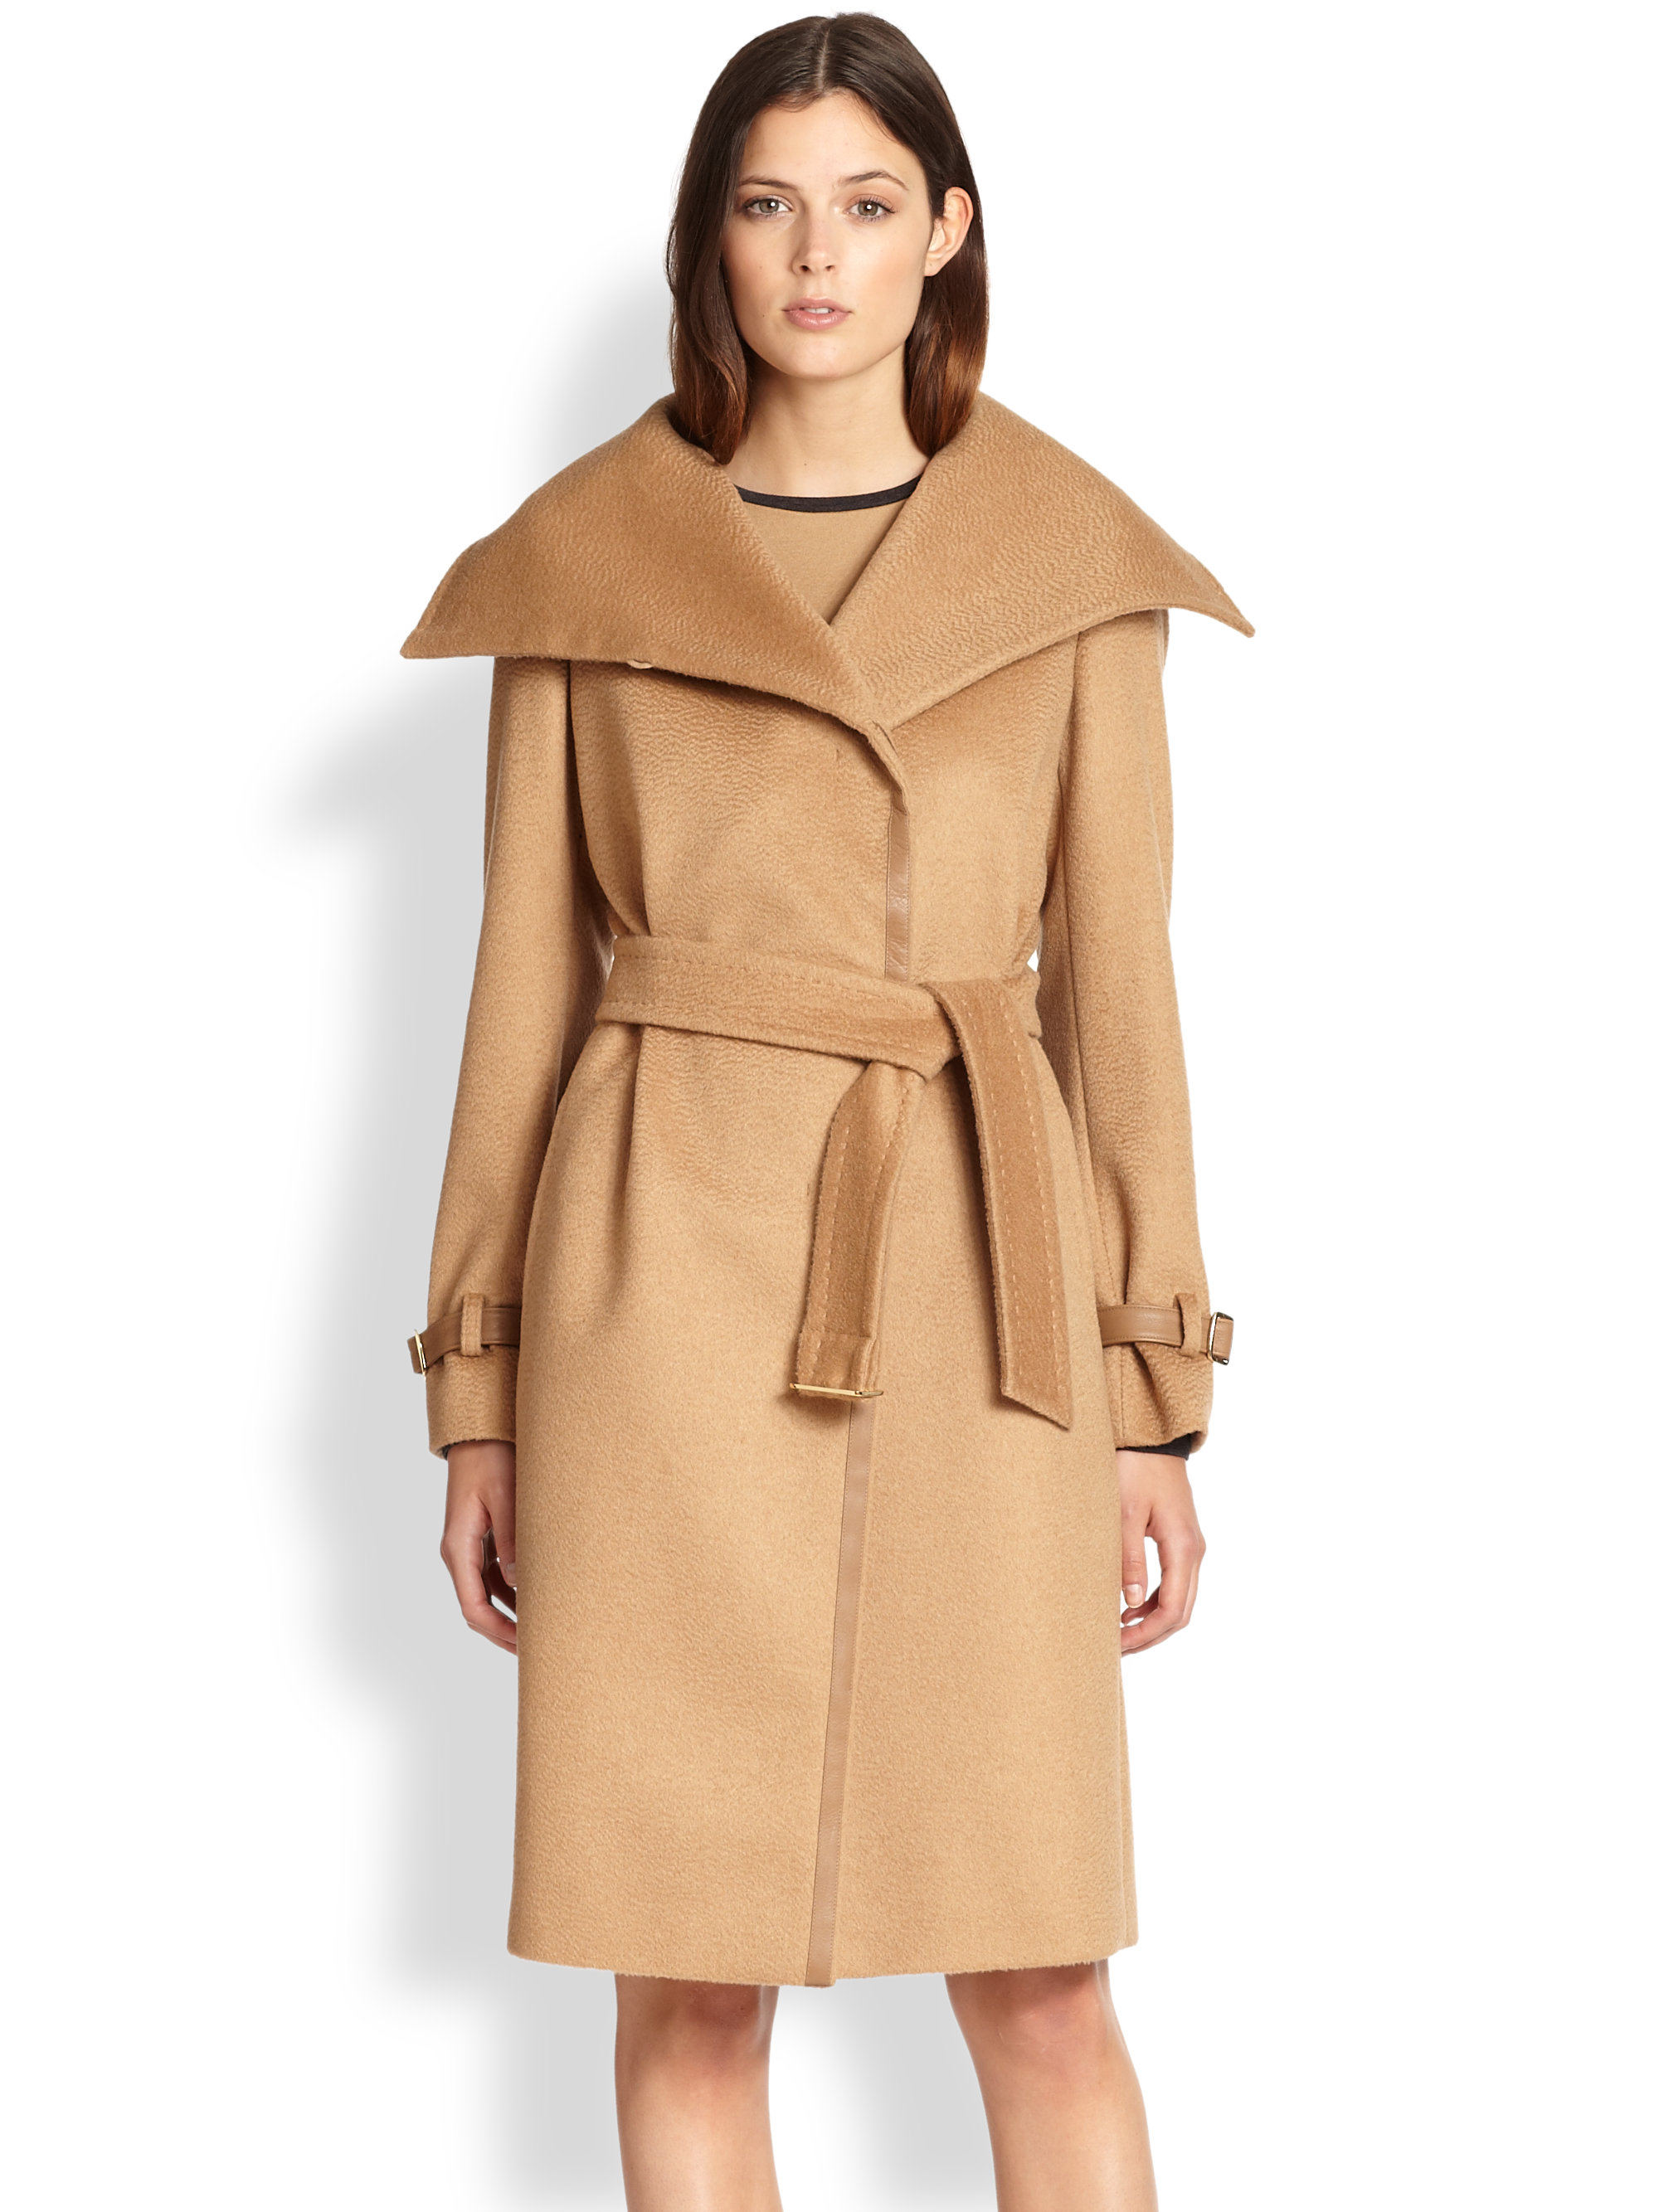 a37ceab989dcb Lyst - Max Mara Fingere Camel Hair Coat in Brown